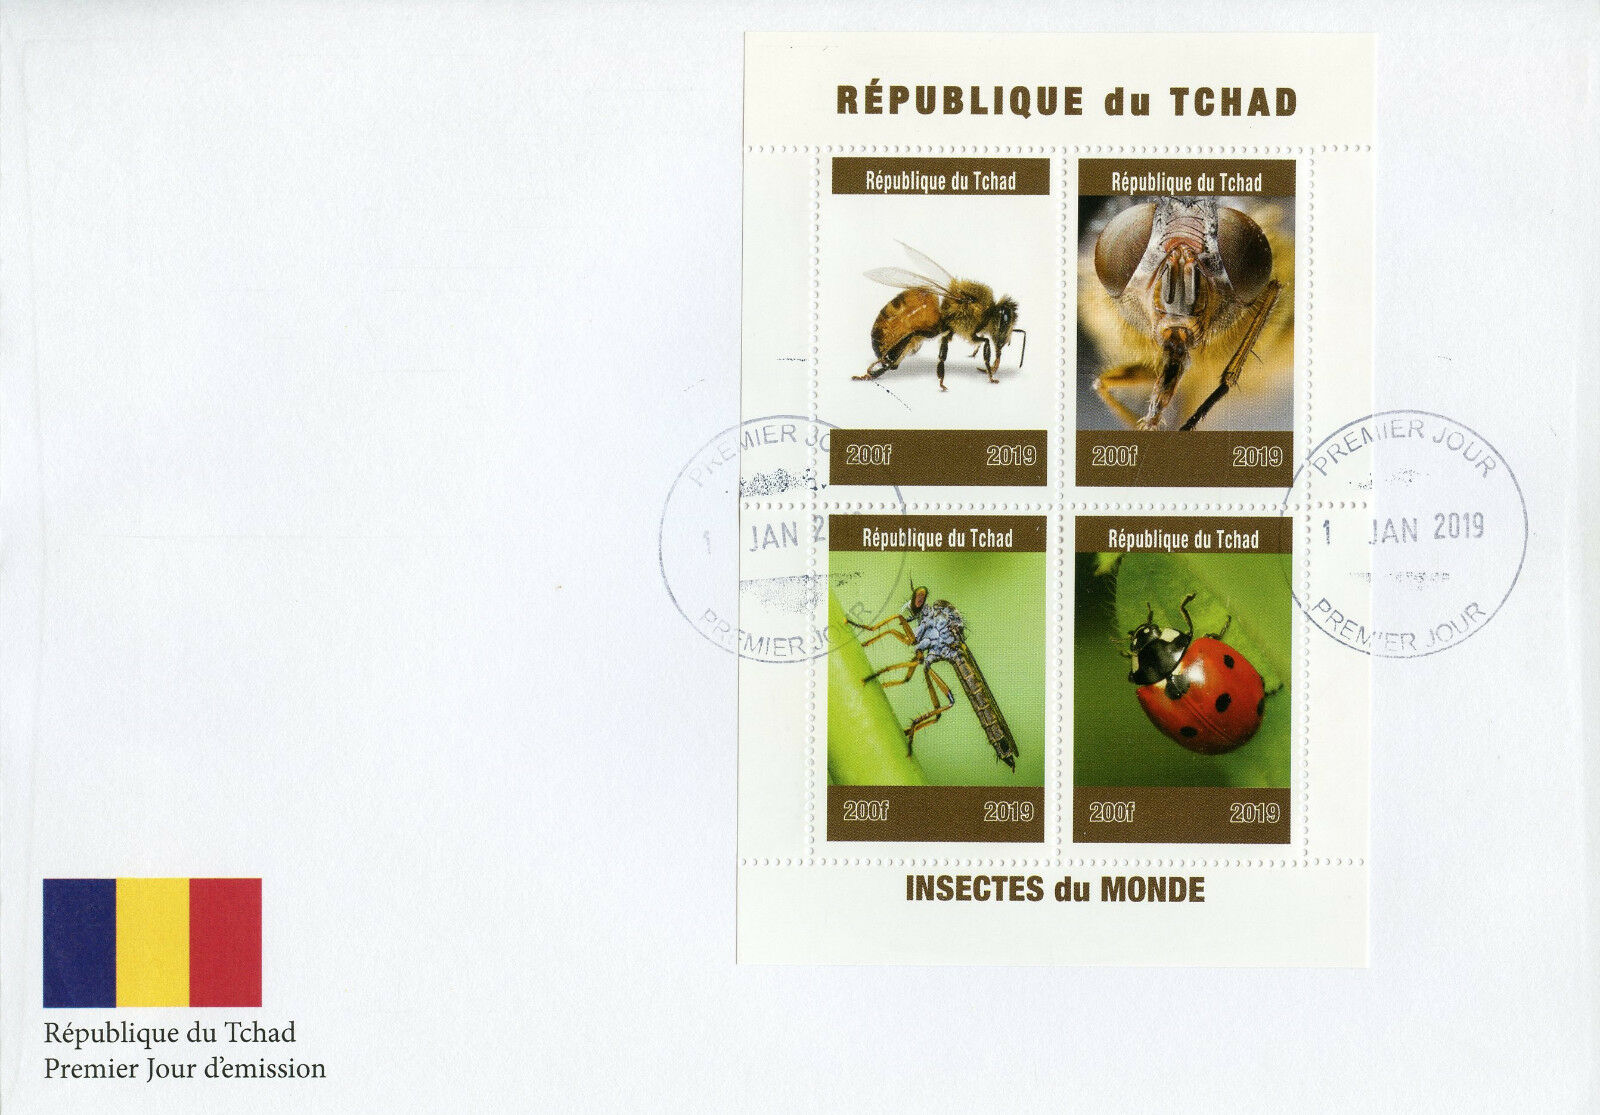 Republic of Chad - Insects of the World (January 2, 2019) first day cover